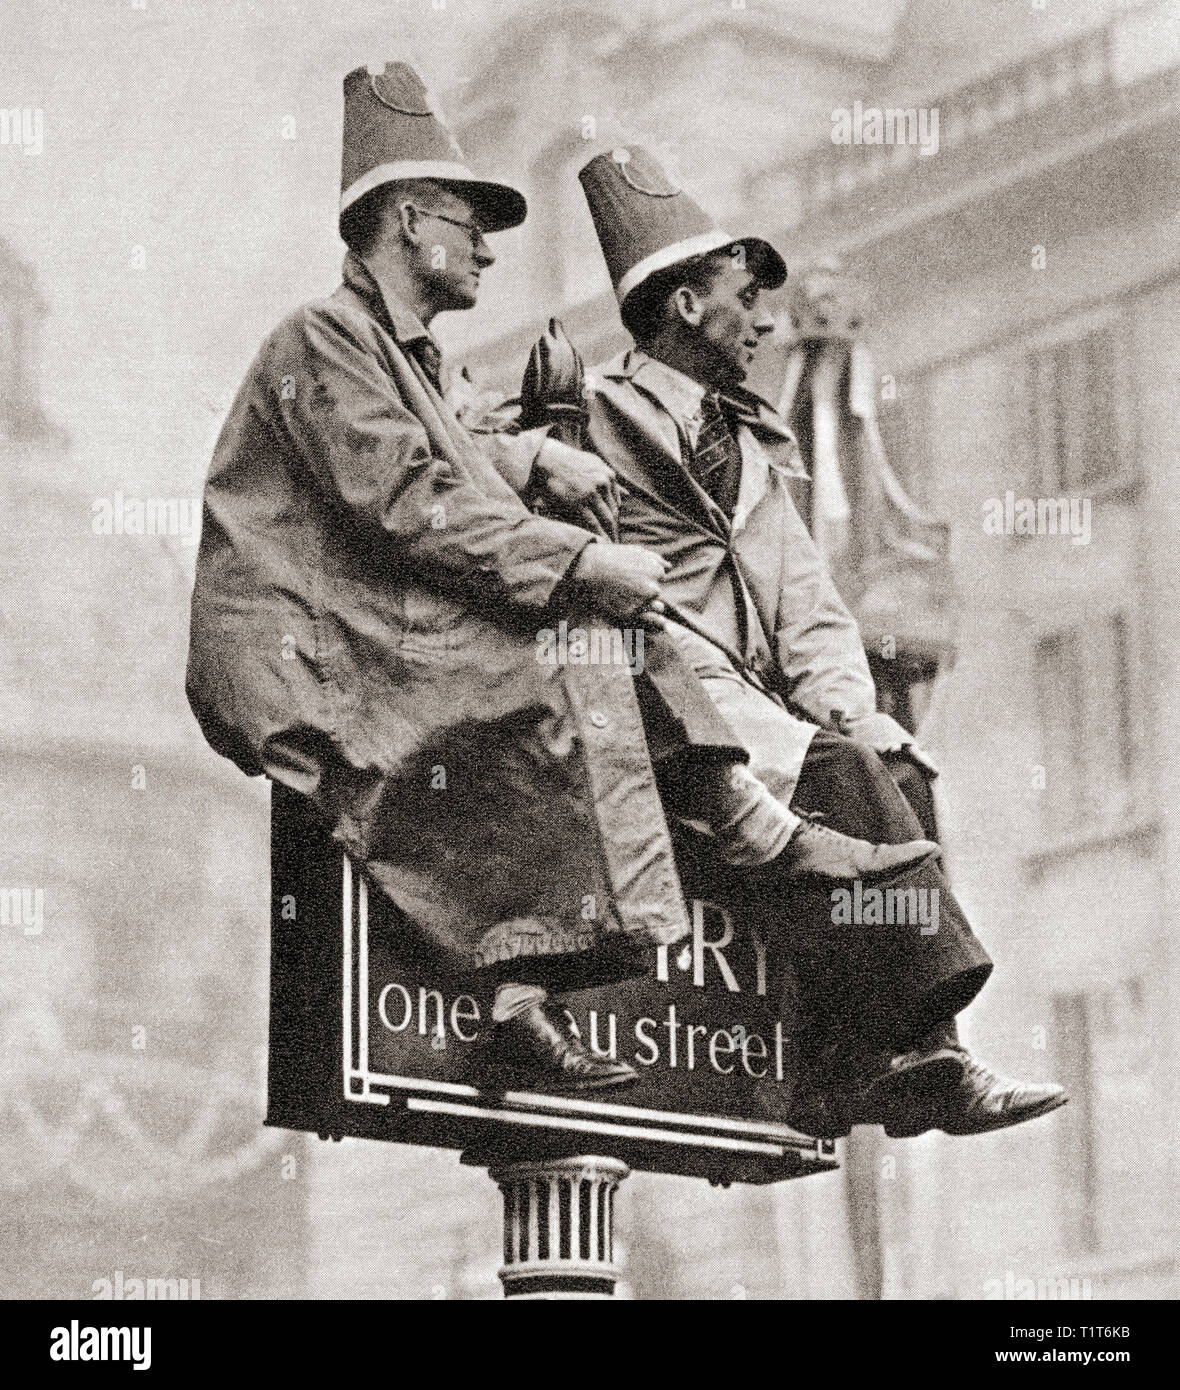 Two men atop a traffic sign in order to get a better view of the Coronation procession of George VI and Queen Elizabeth, London, England, 1937.  From The Coronation in Pictures, published 1937. - Stock Image